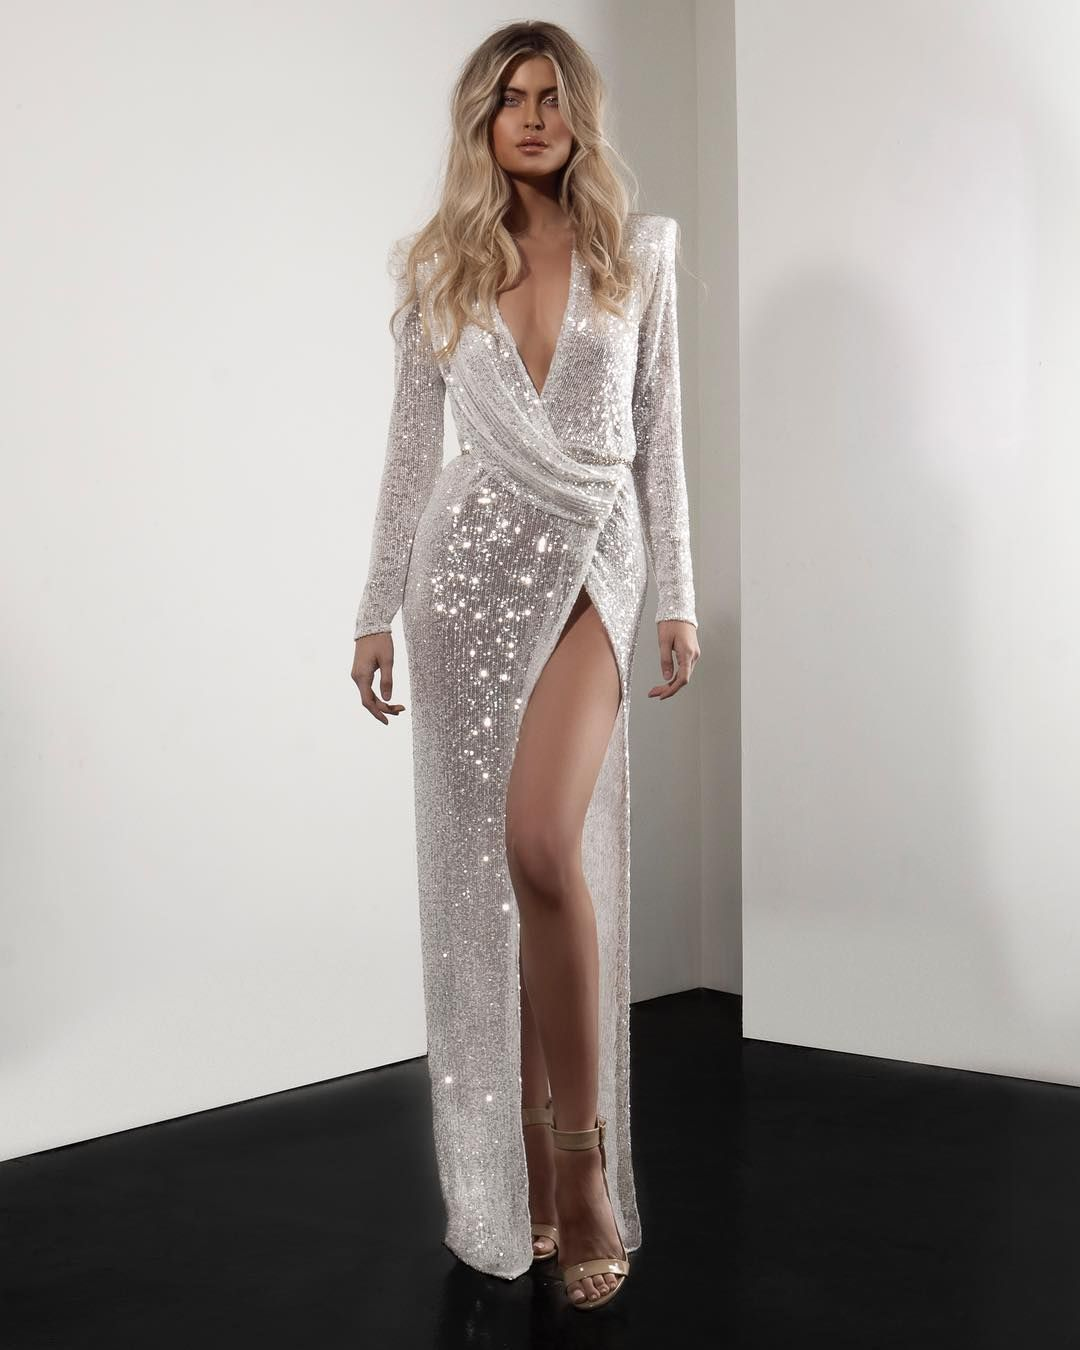 20 7 Mil Me Gusta 370 Comentarios M I C H A E L C O S T E L L O Michaelcostello E Long Sleeve Skater Dress Prom Dresses Long With Sleeves Maxi Dress Prom